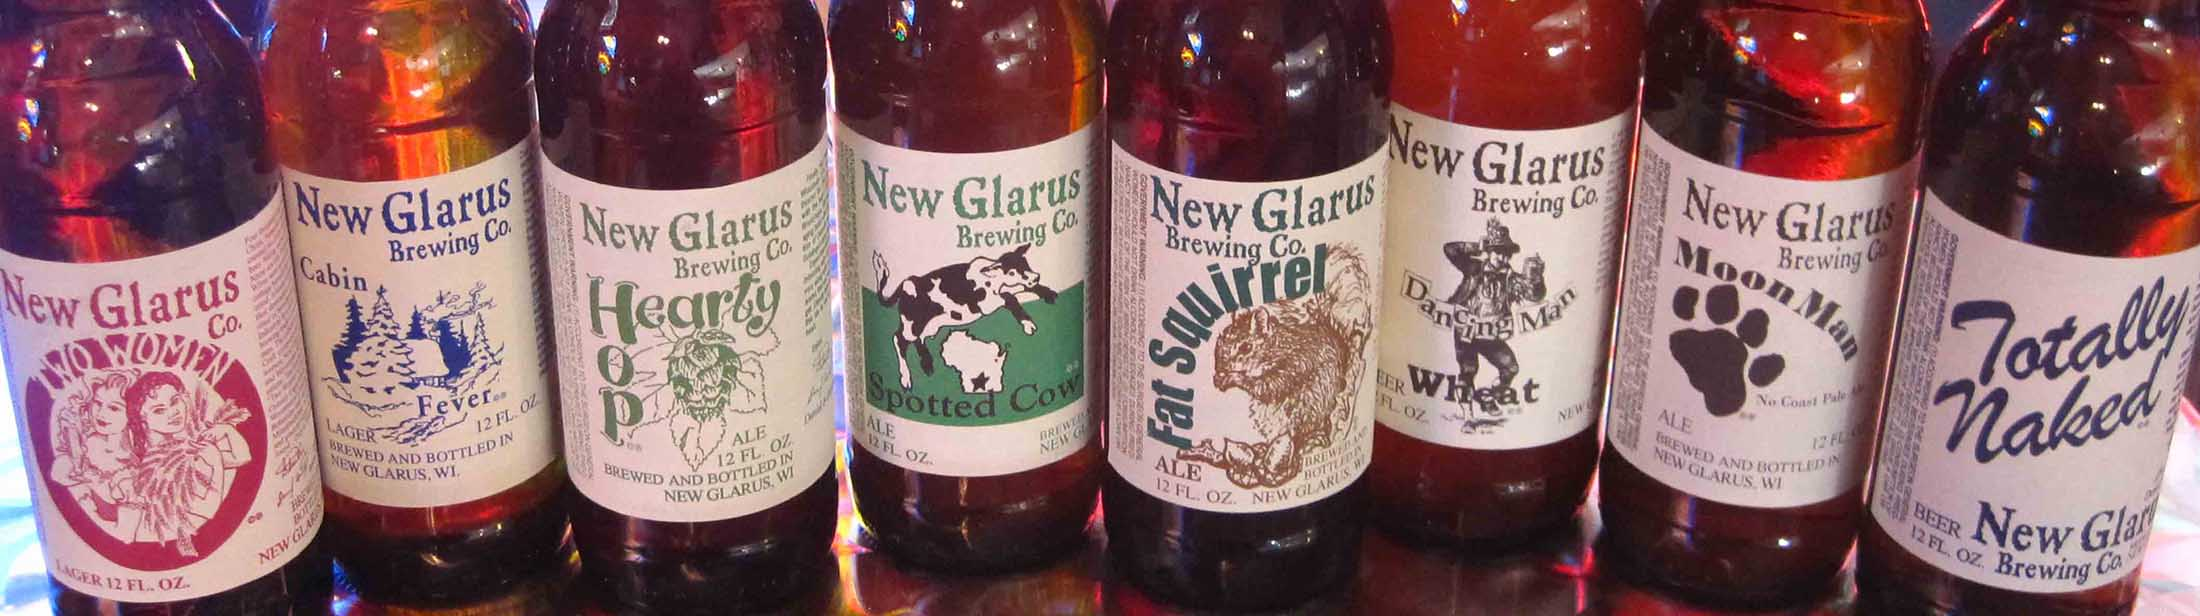 New Glarus Spotted Cow Brewery Beer Cornellier Super Store Beloit WI 2